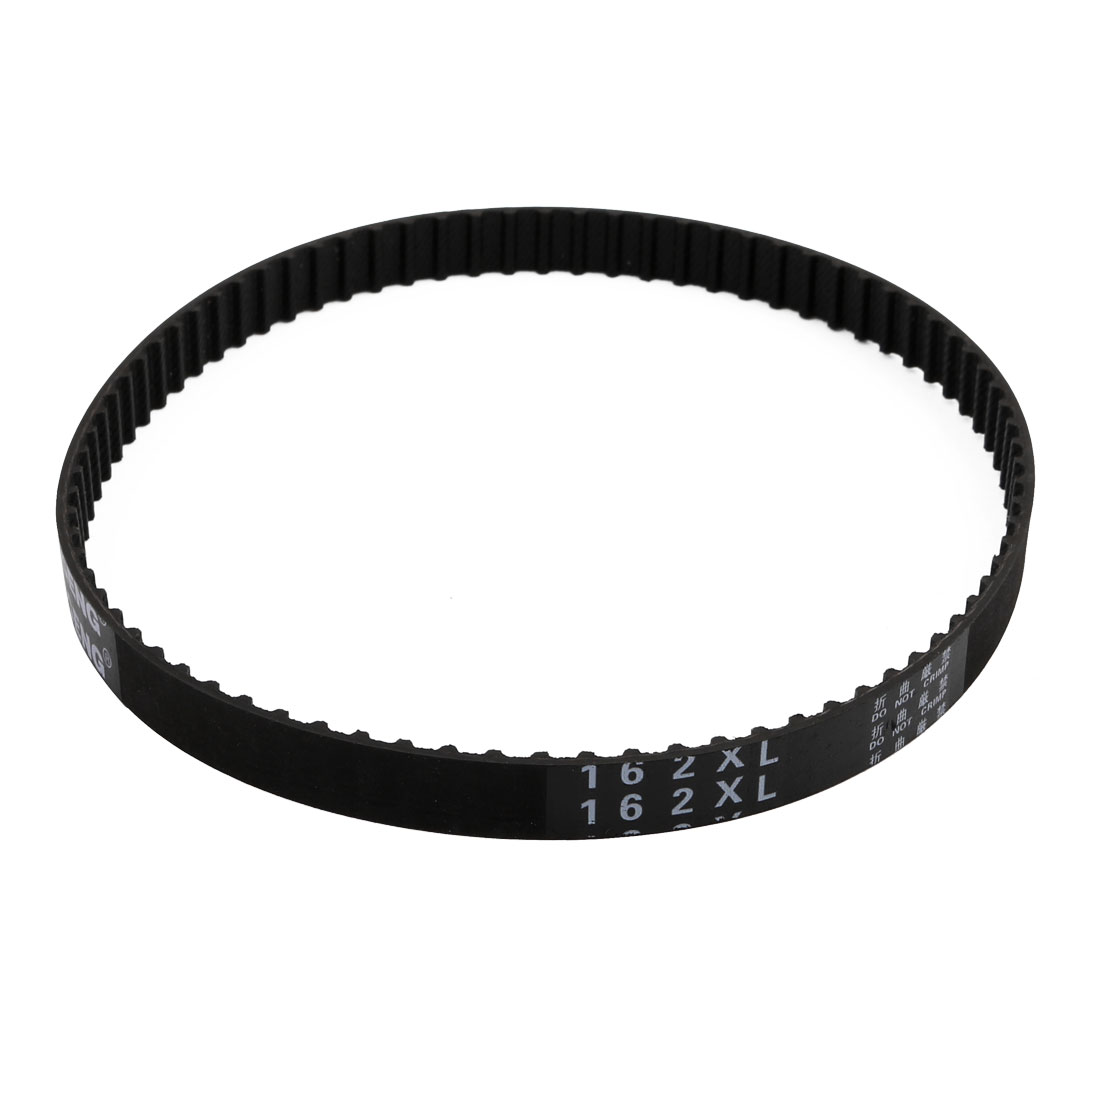 162XL 81 Teeth 10mm Width 5.08mm Pitch Stepper Motor Rubber Timing Geared Belt